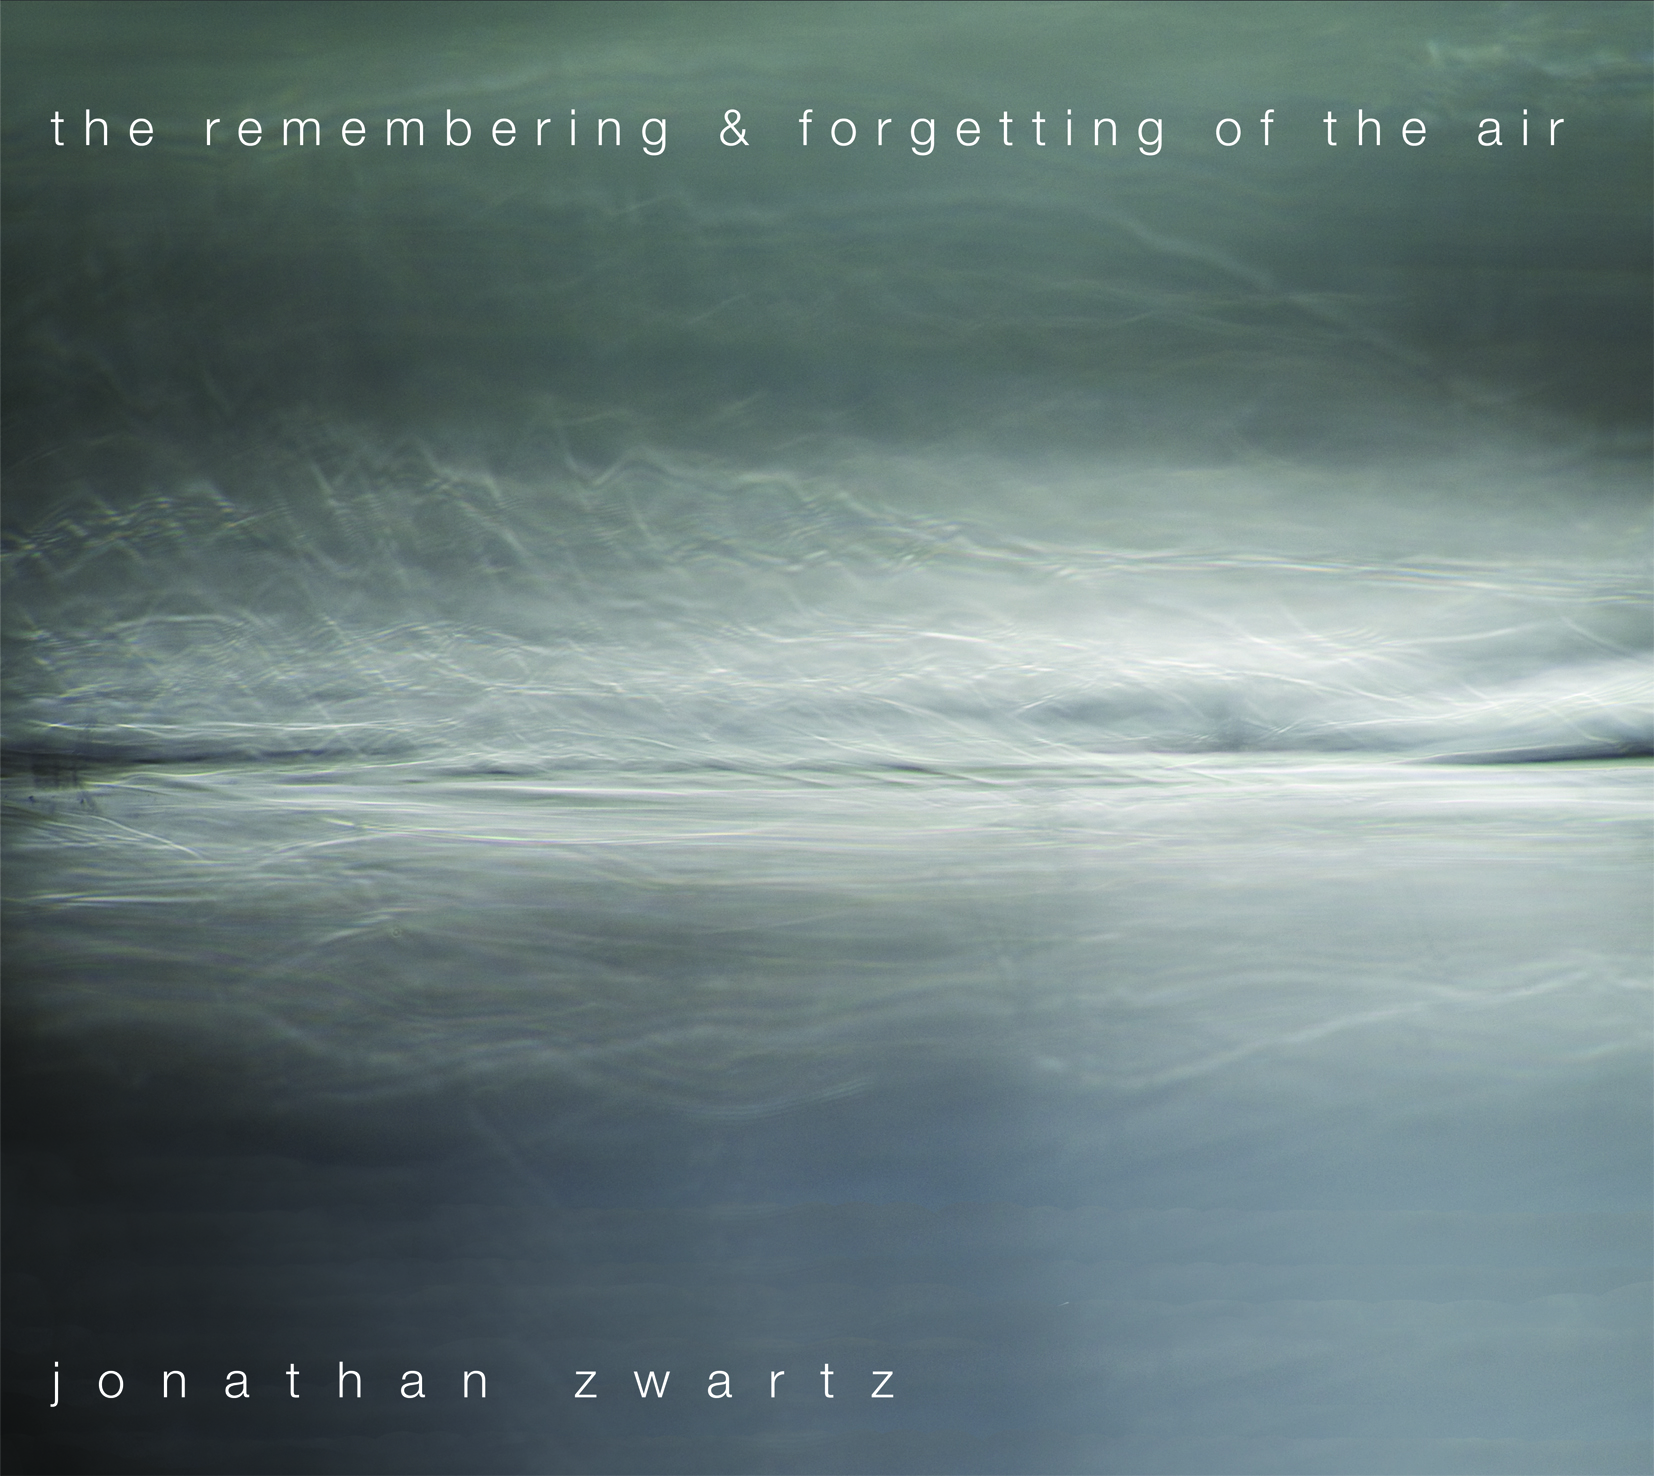 CD Review: the remembering and forgetting of the air